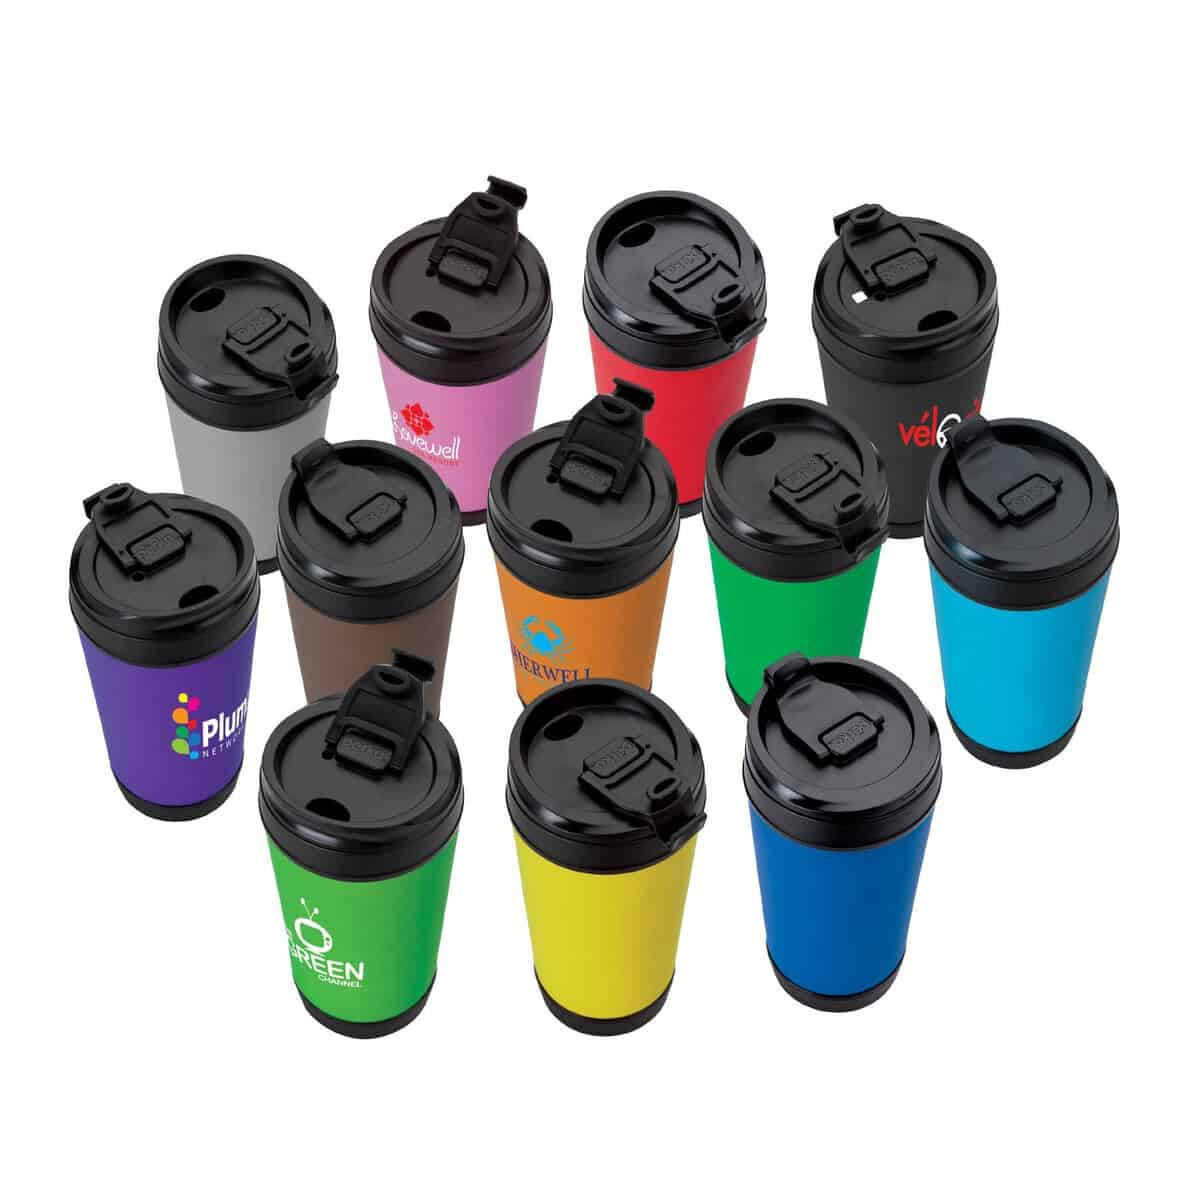 17 Oz. Perka Insulated Mug w/Flip Up Lid